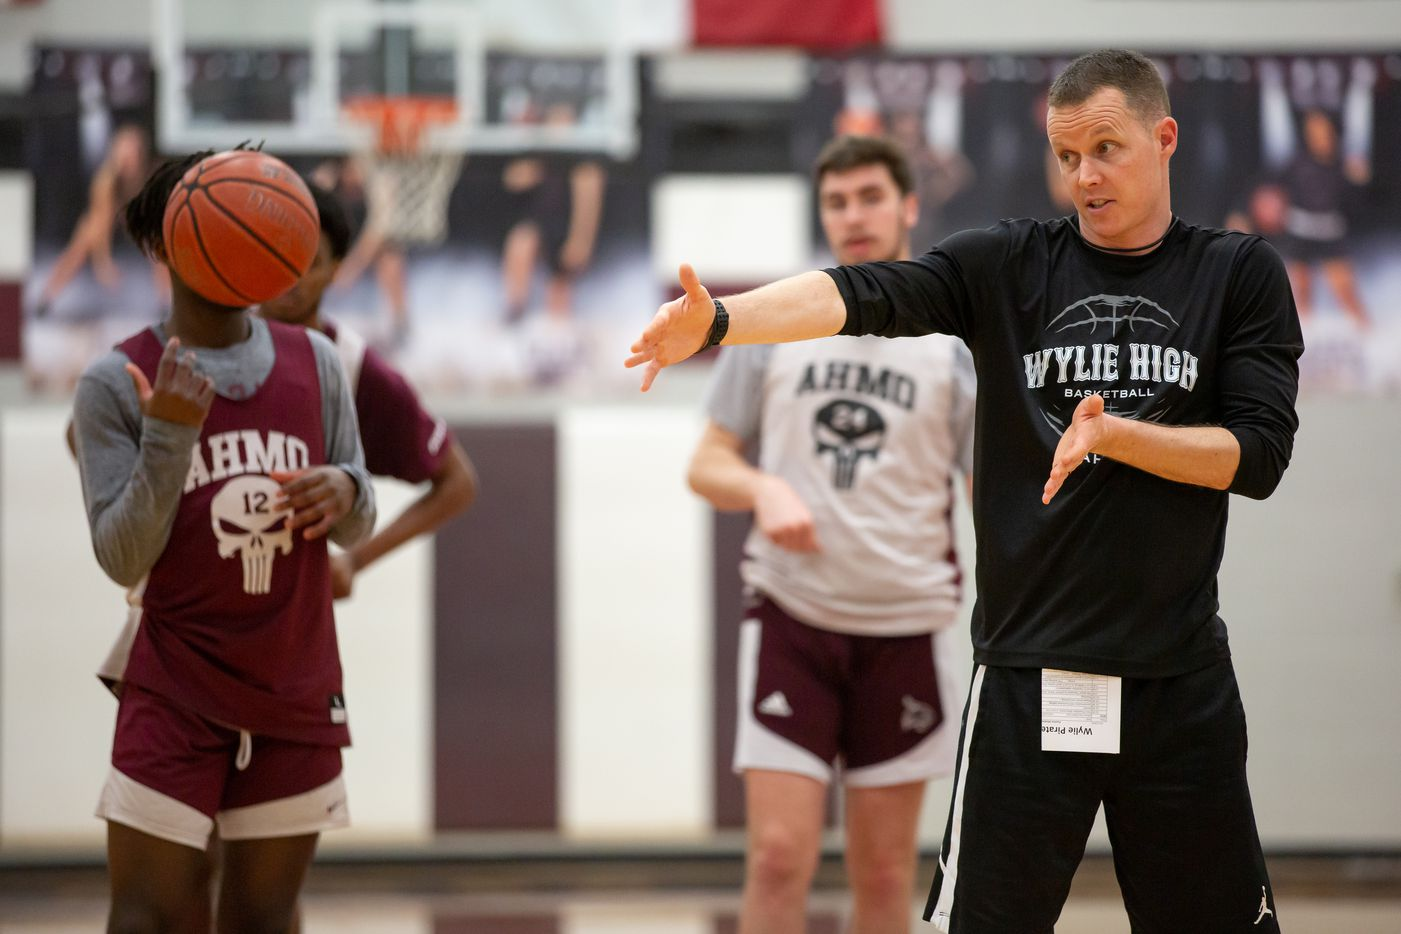 Wylie High School head basketball coach Stephen Pearce directs players in a drill during practice at Wylie High School on March 11, 2020 in Wylie, Texas. (Kara Dry/Special Contributor)